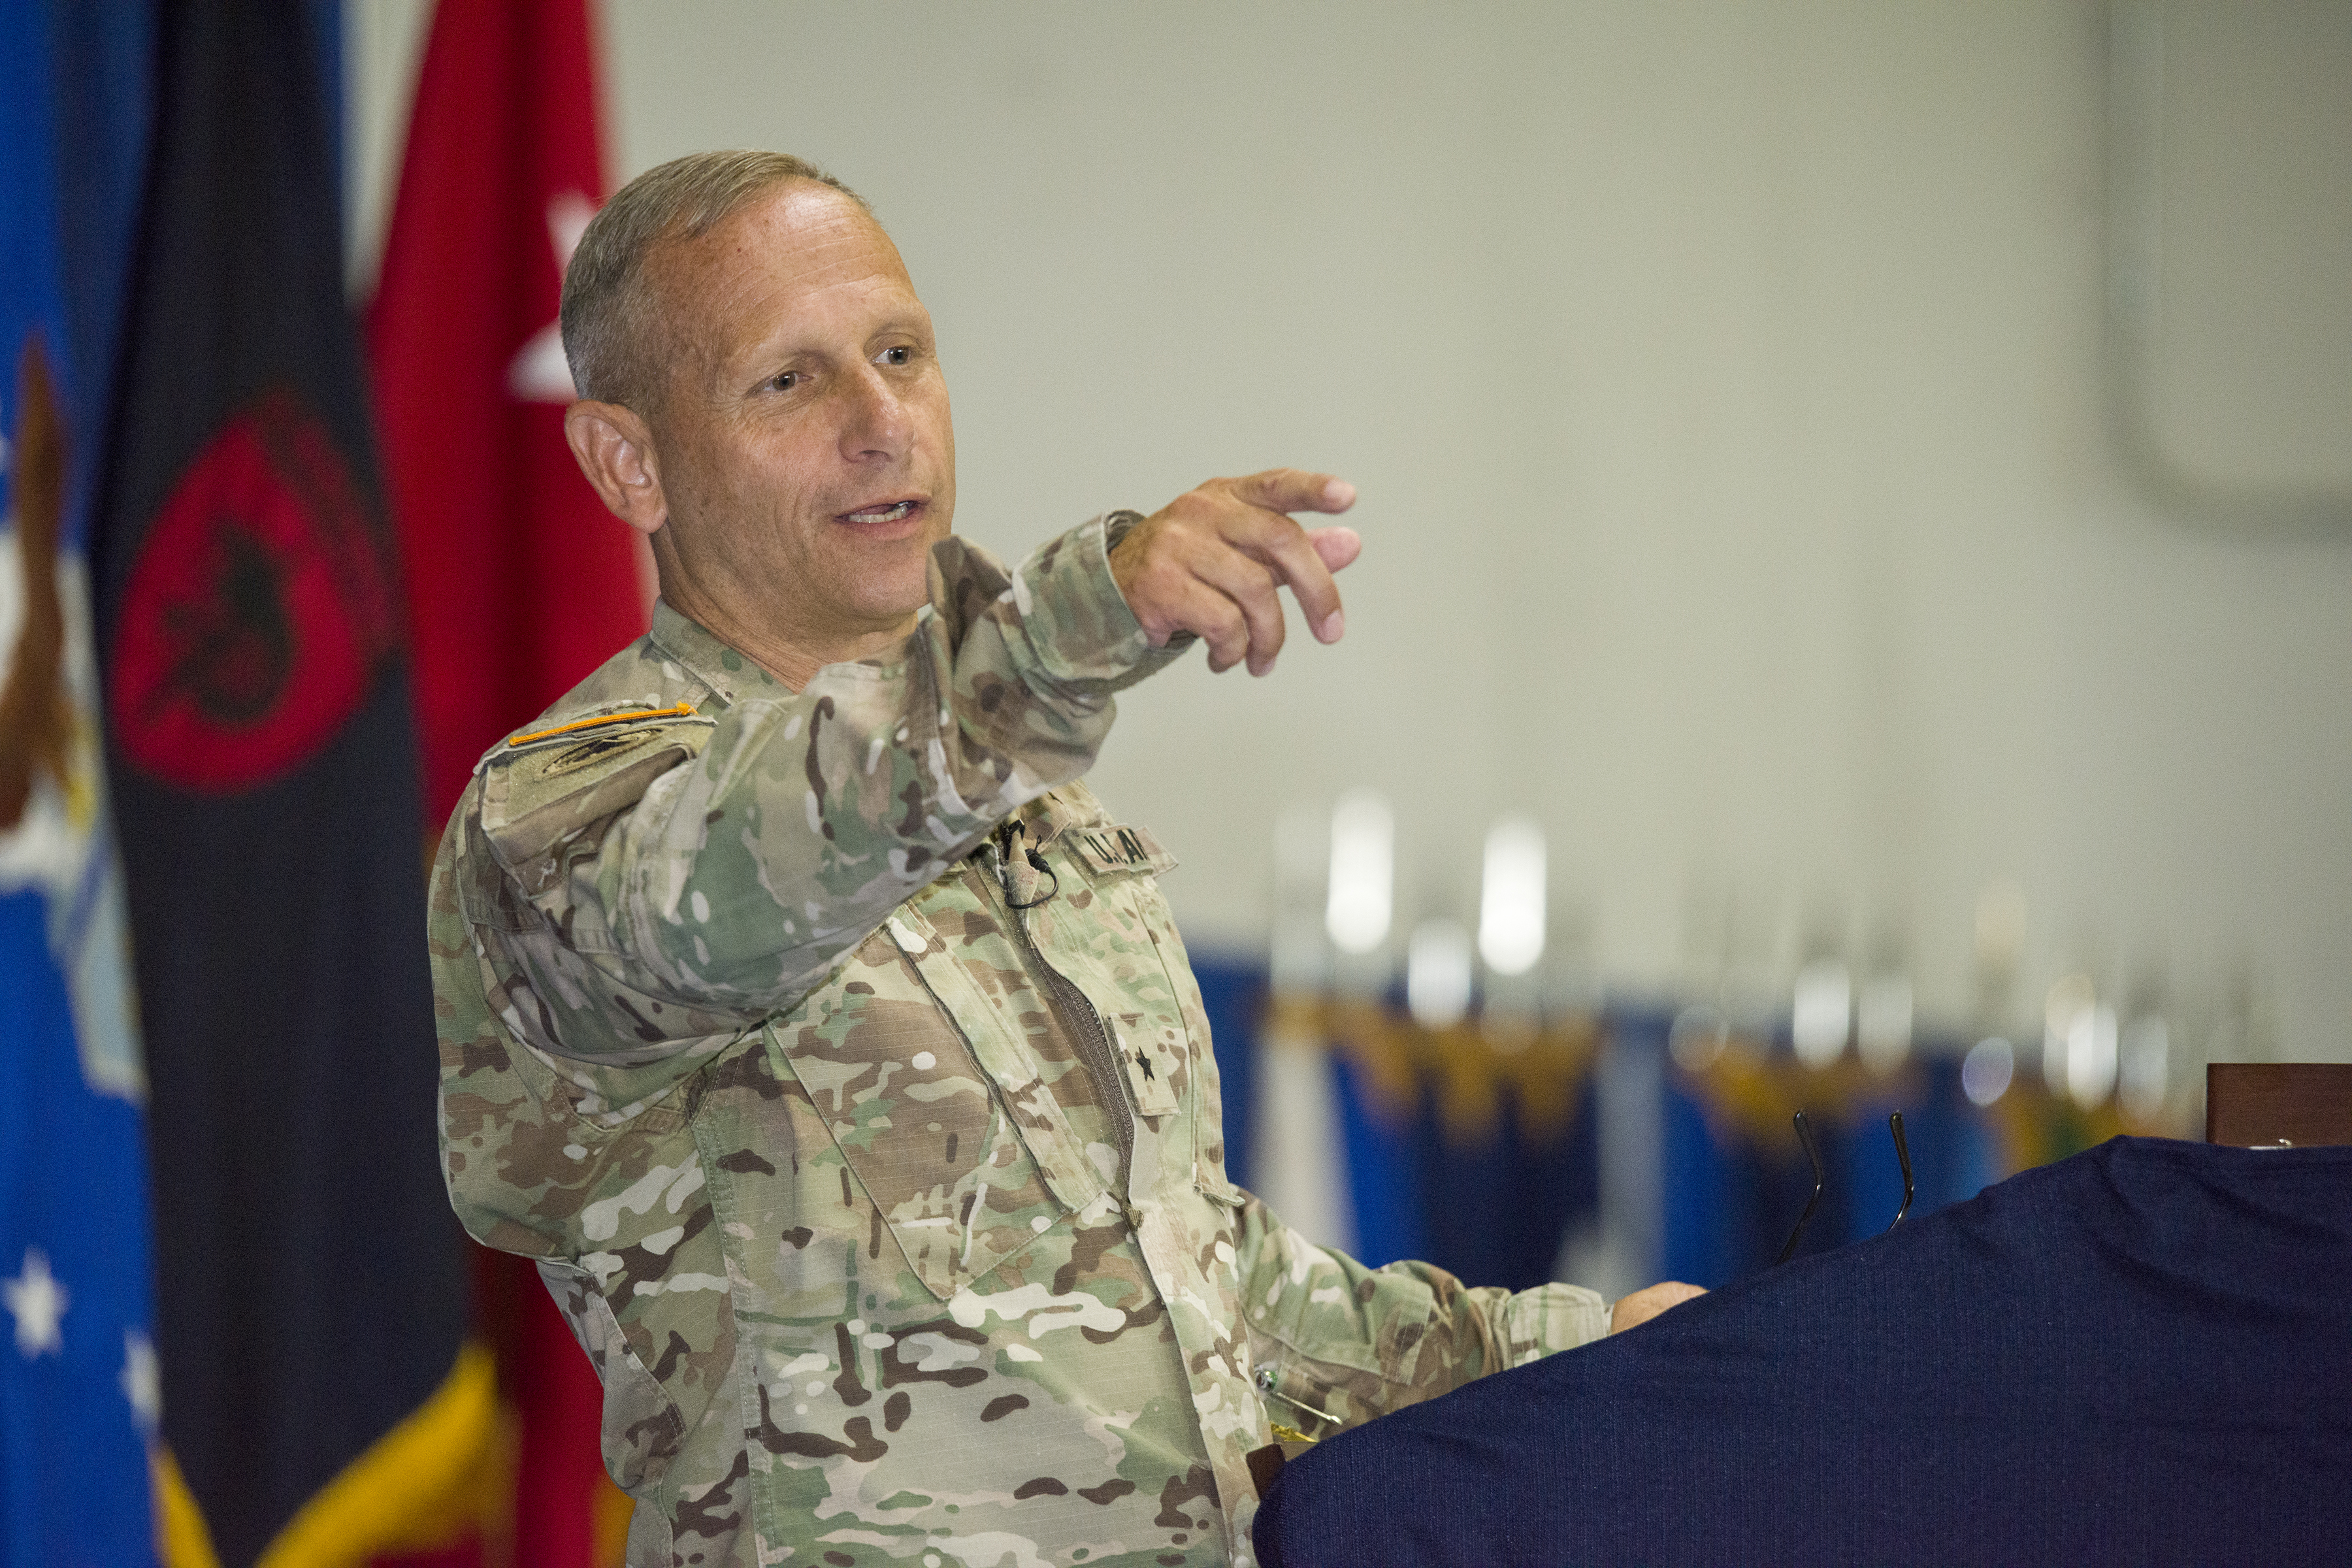 U.S. Army Brig. Gen. Donald C. Bolduc, outgoing commander of Special Operations Command Africa, speaks during a change of command ceremony at Kelley Barracks, Stuttgart, Germany, June 29, 2017. Bolduc was succeeded by U.S. Air Force Maj. Gen. J. Marcus Hicks. Special Operations Command Africa supports U.S. Africa Command by counter violent extremist organizations, building the military capacity of key partners in Africa and protecting U.S. personnel and facilities. (U.S. Army photo by Visual Information Specialist Eric Steen)